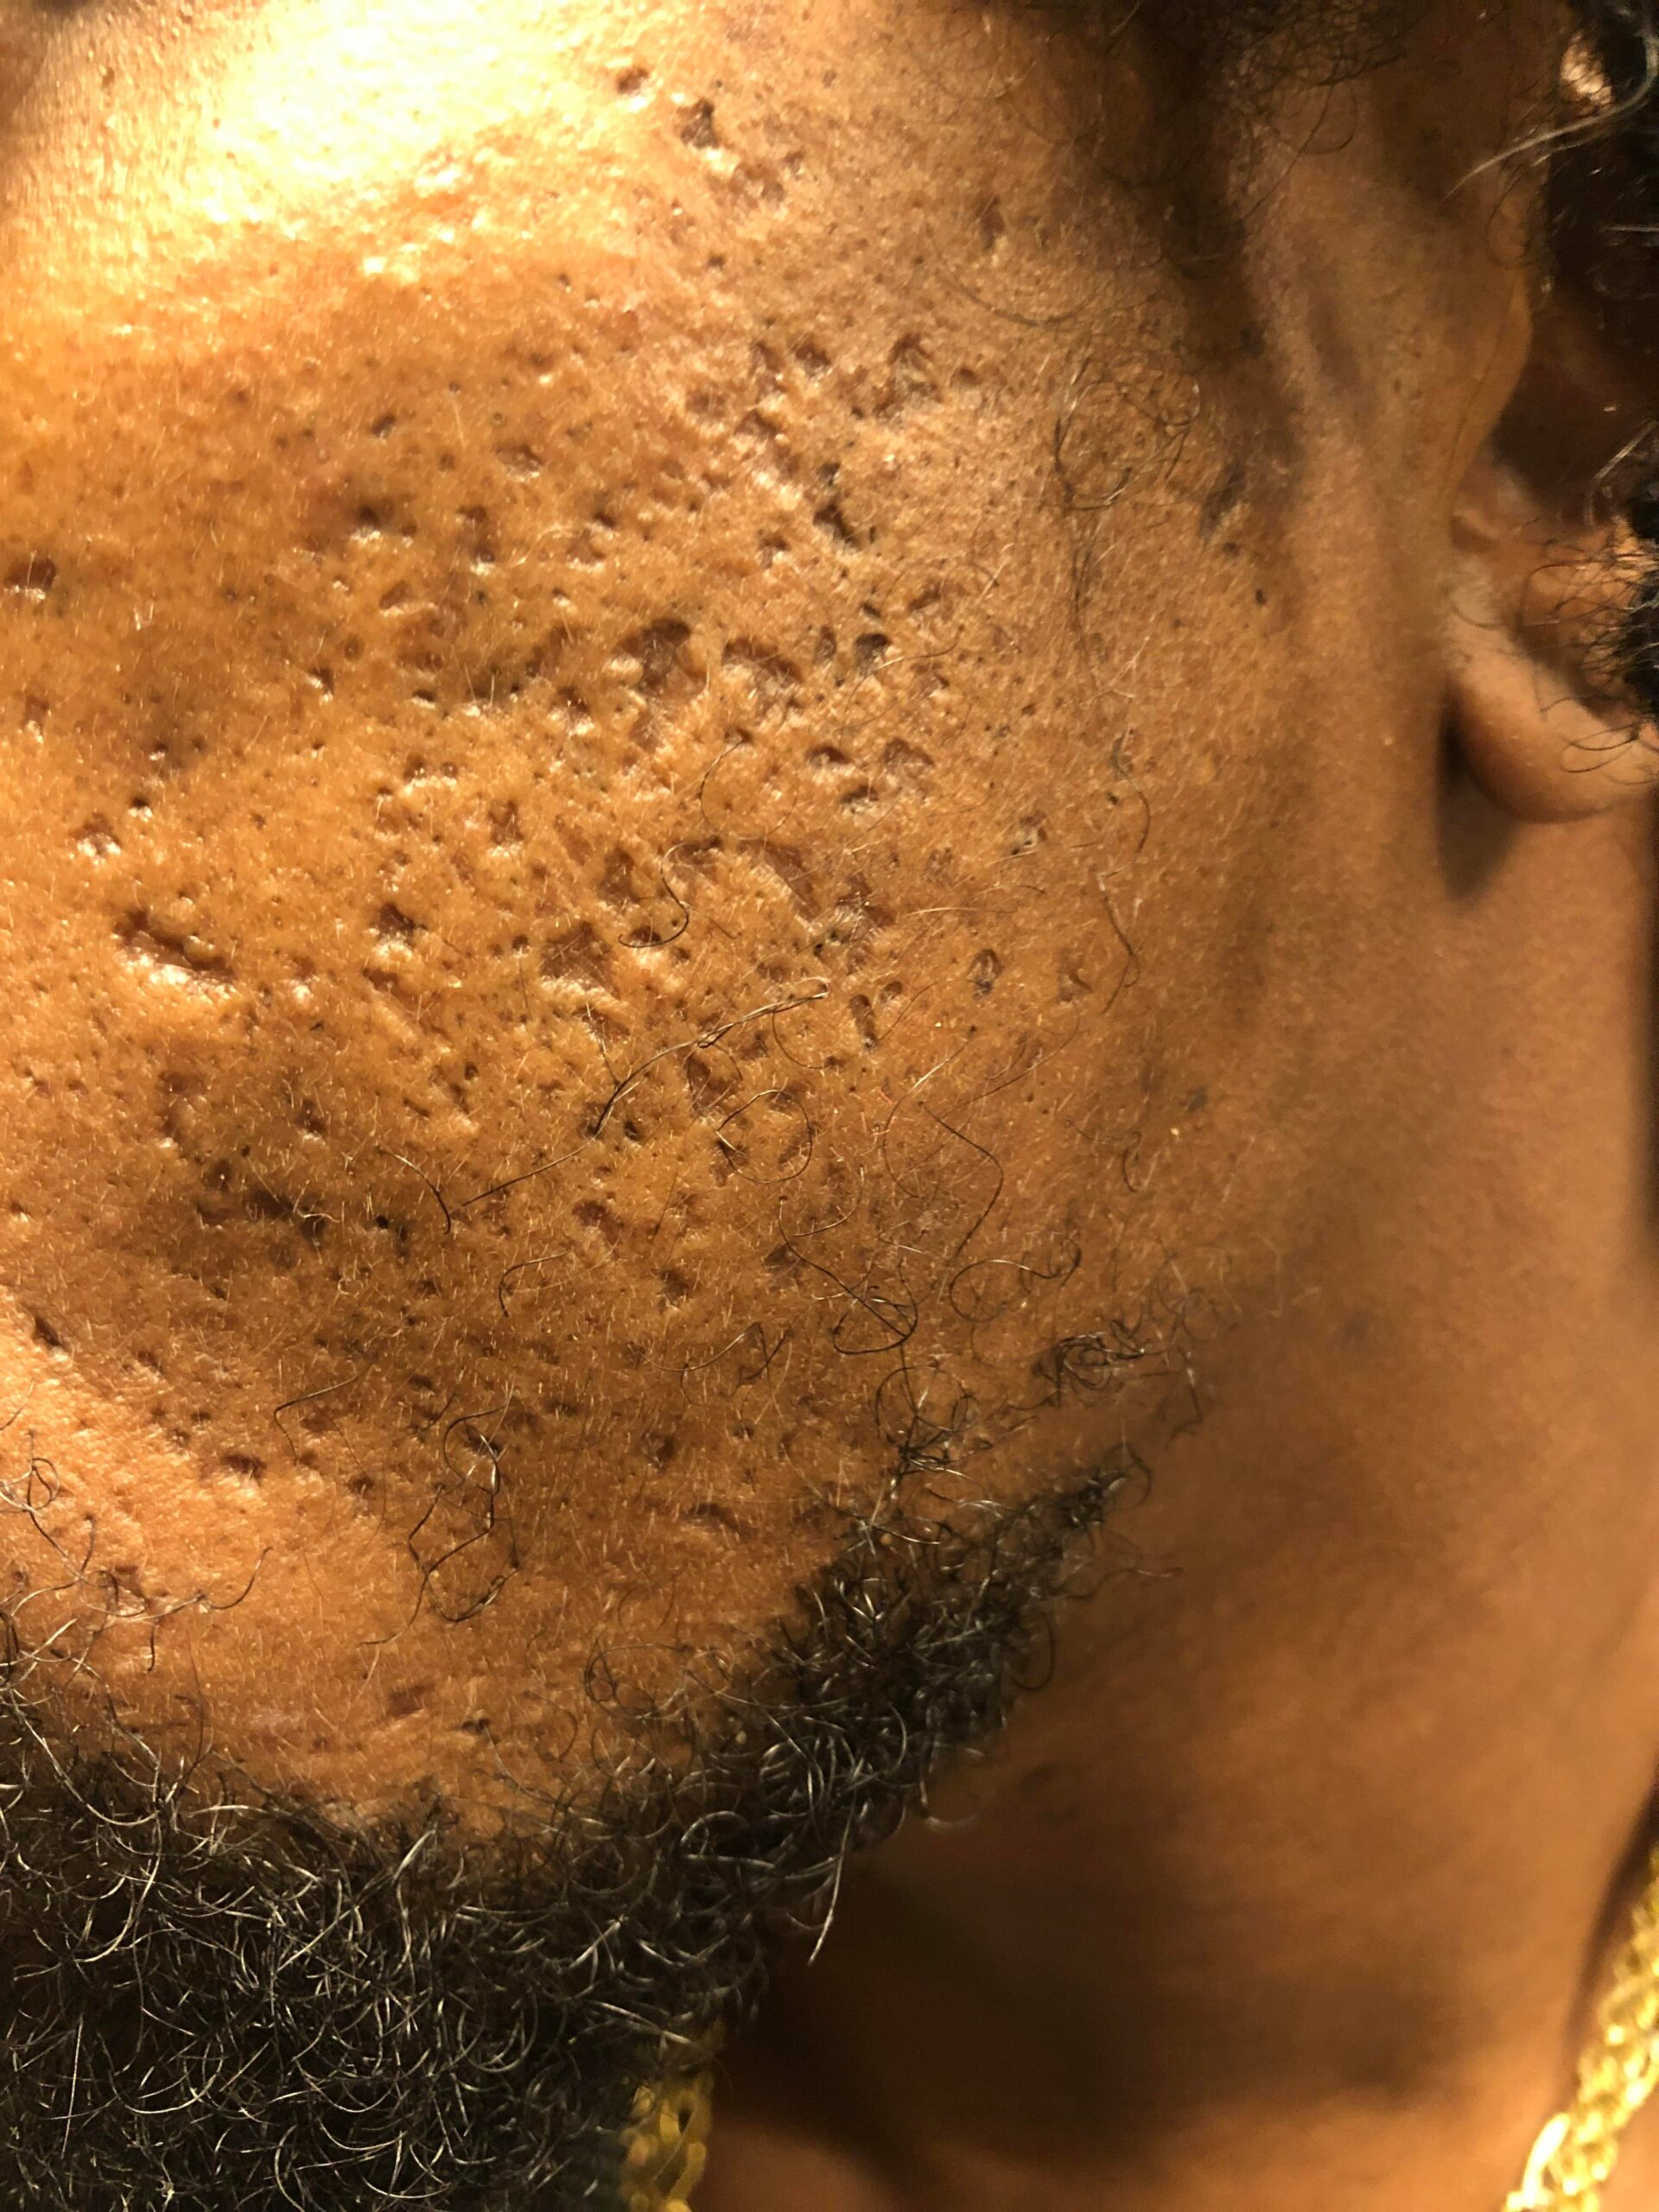 [Skin Concern] HELP!!! I get a lot of big blackheads and I have a lot of pits/craters… I really don't know what to do. Please help. I get sad looking at myself in mirror :(